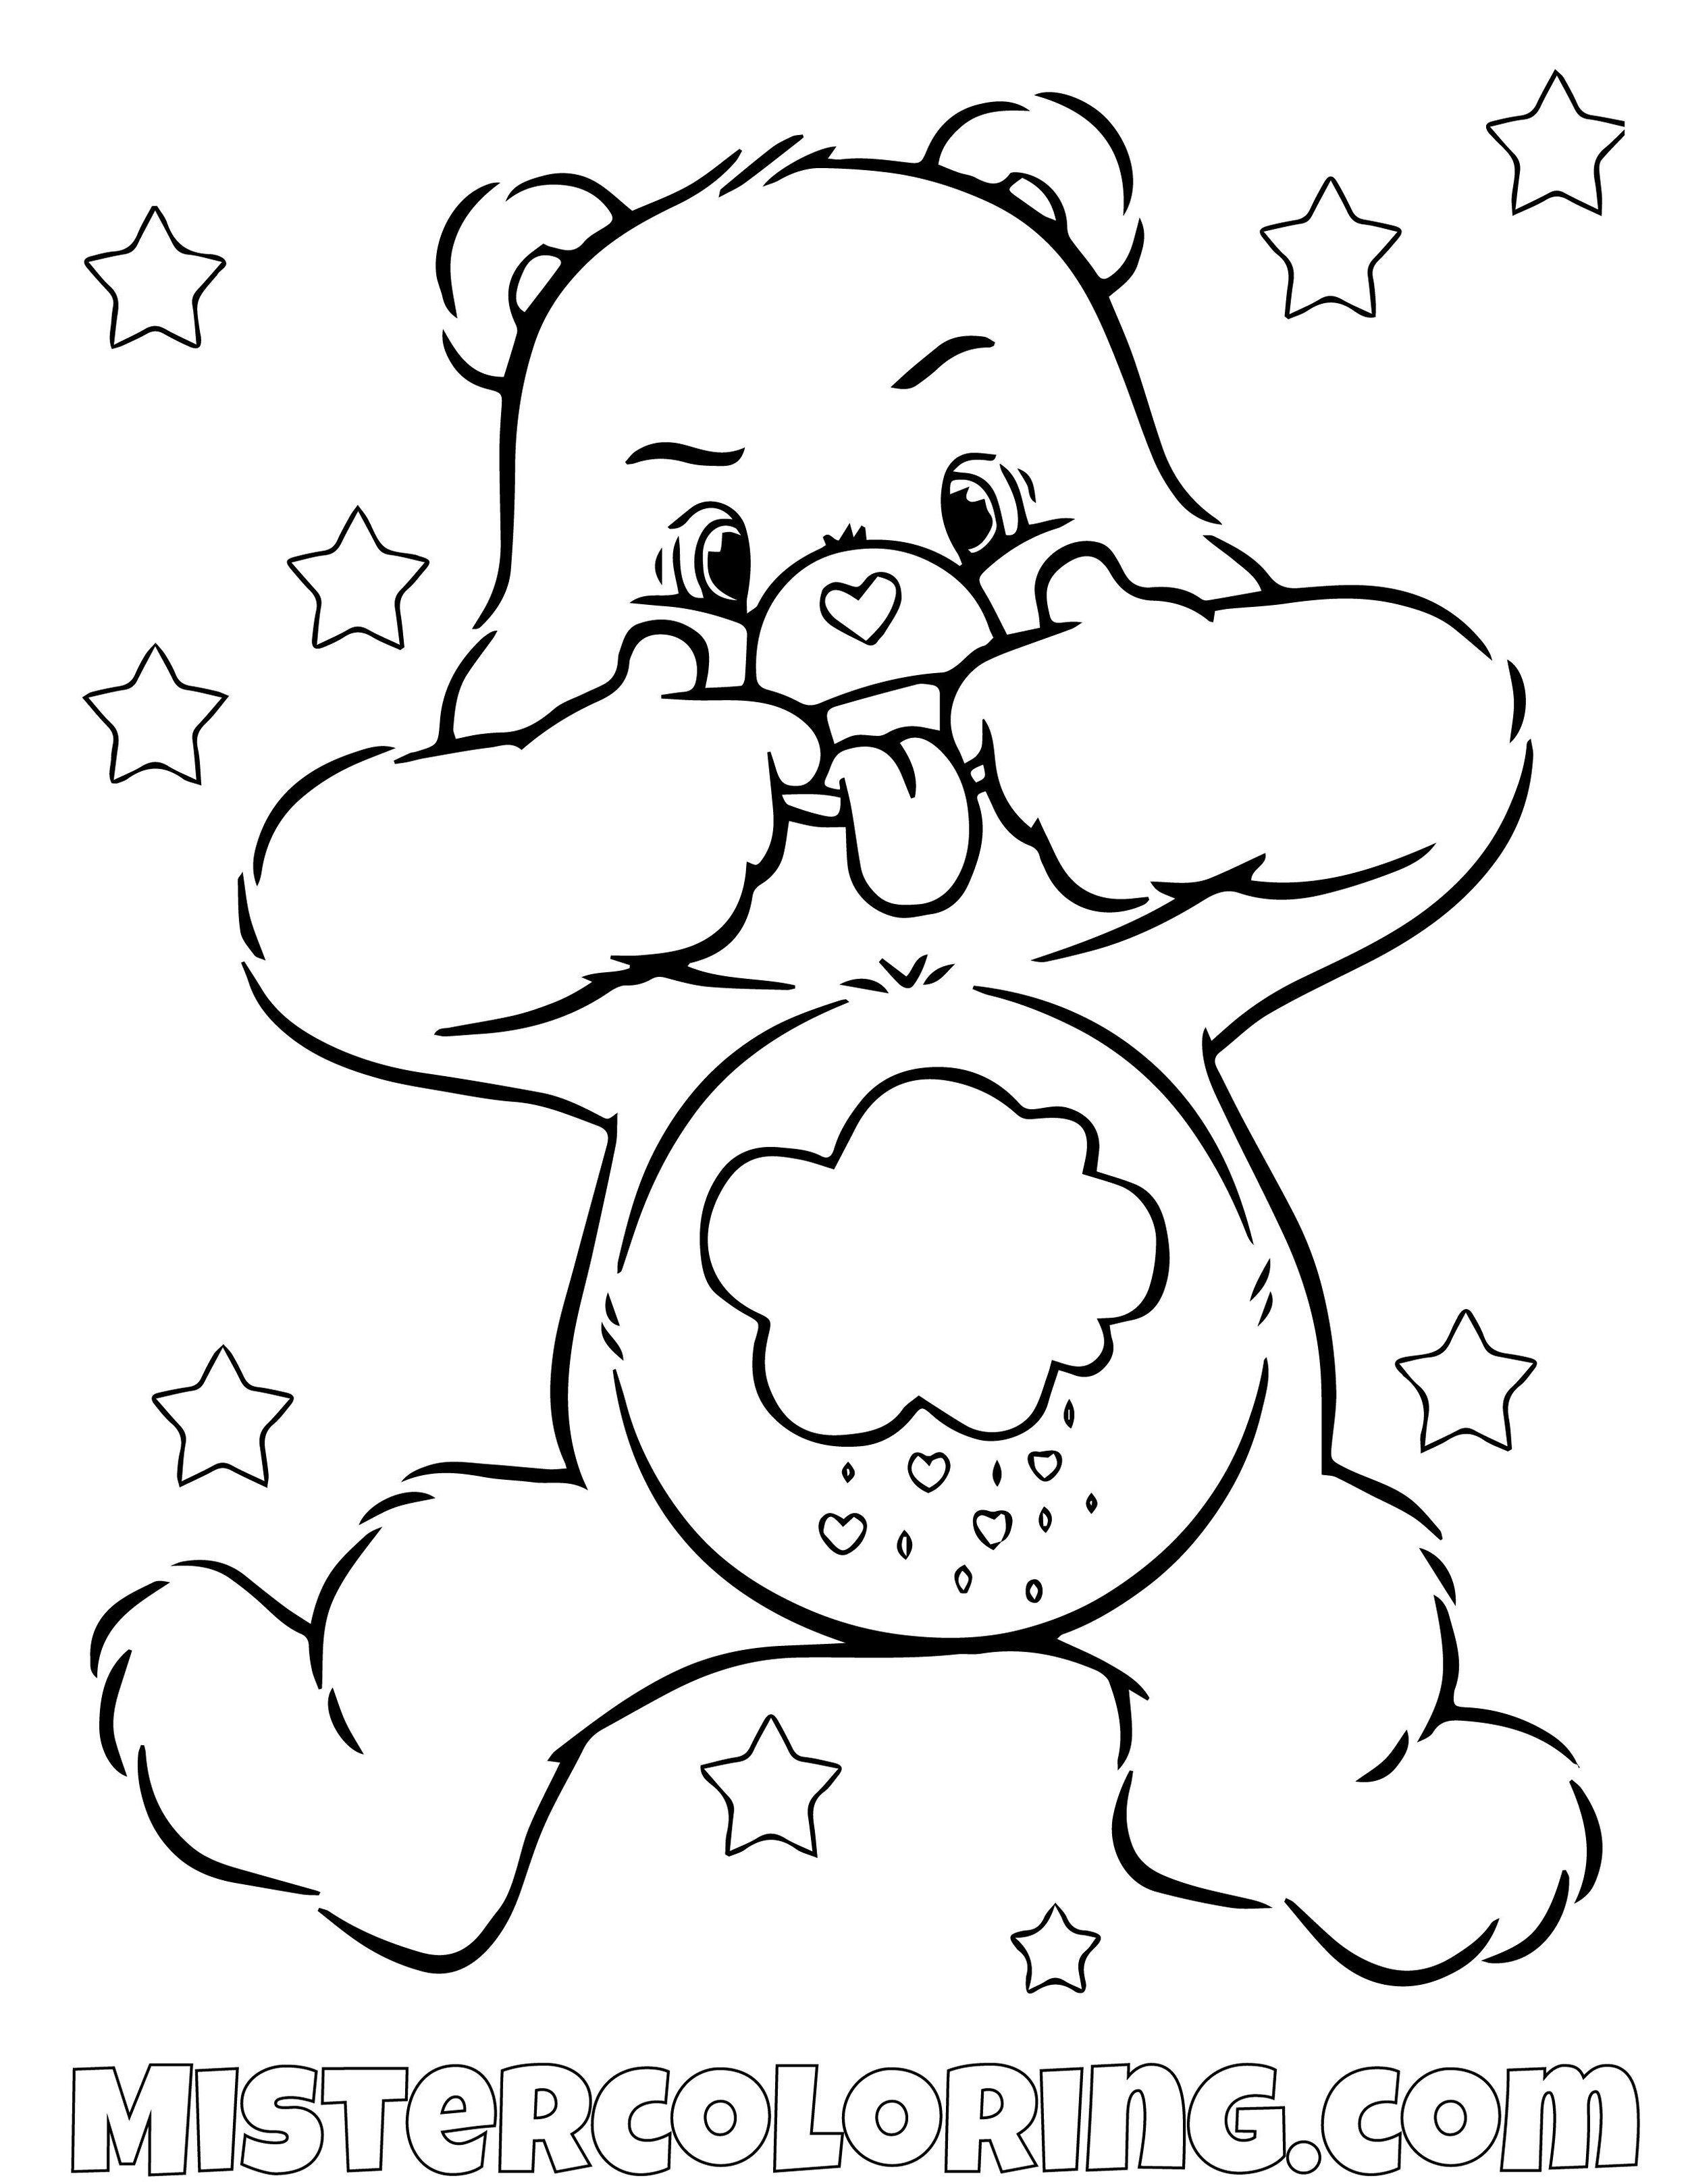 Care Bear Coloring Pages For Kids — Mister Coloring | 1294x1000